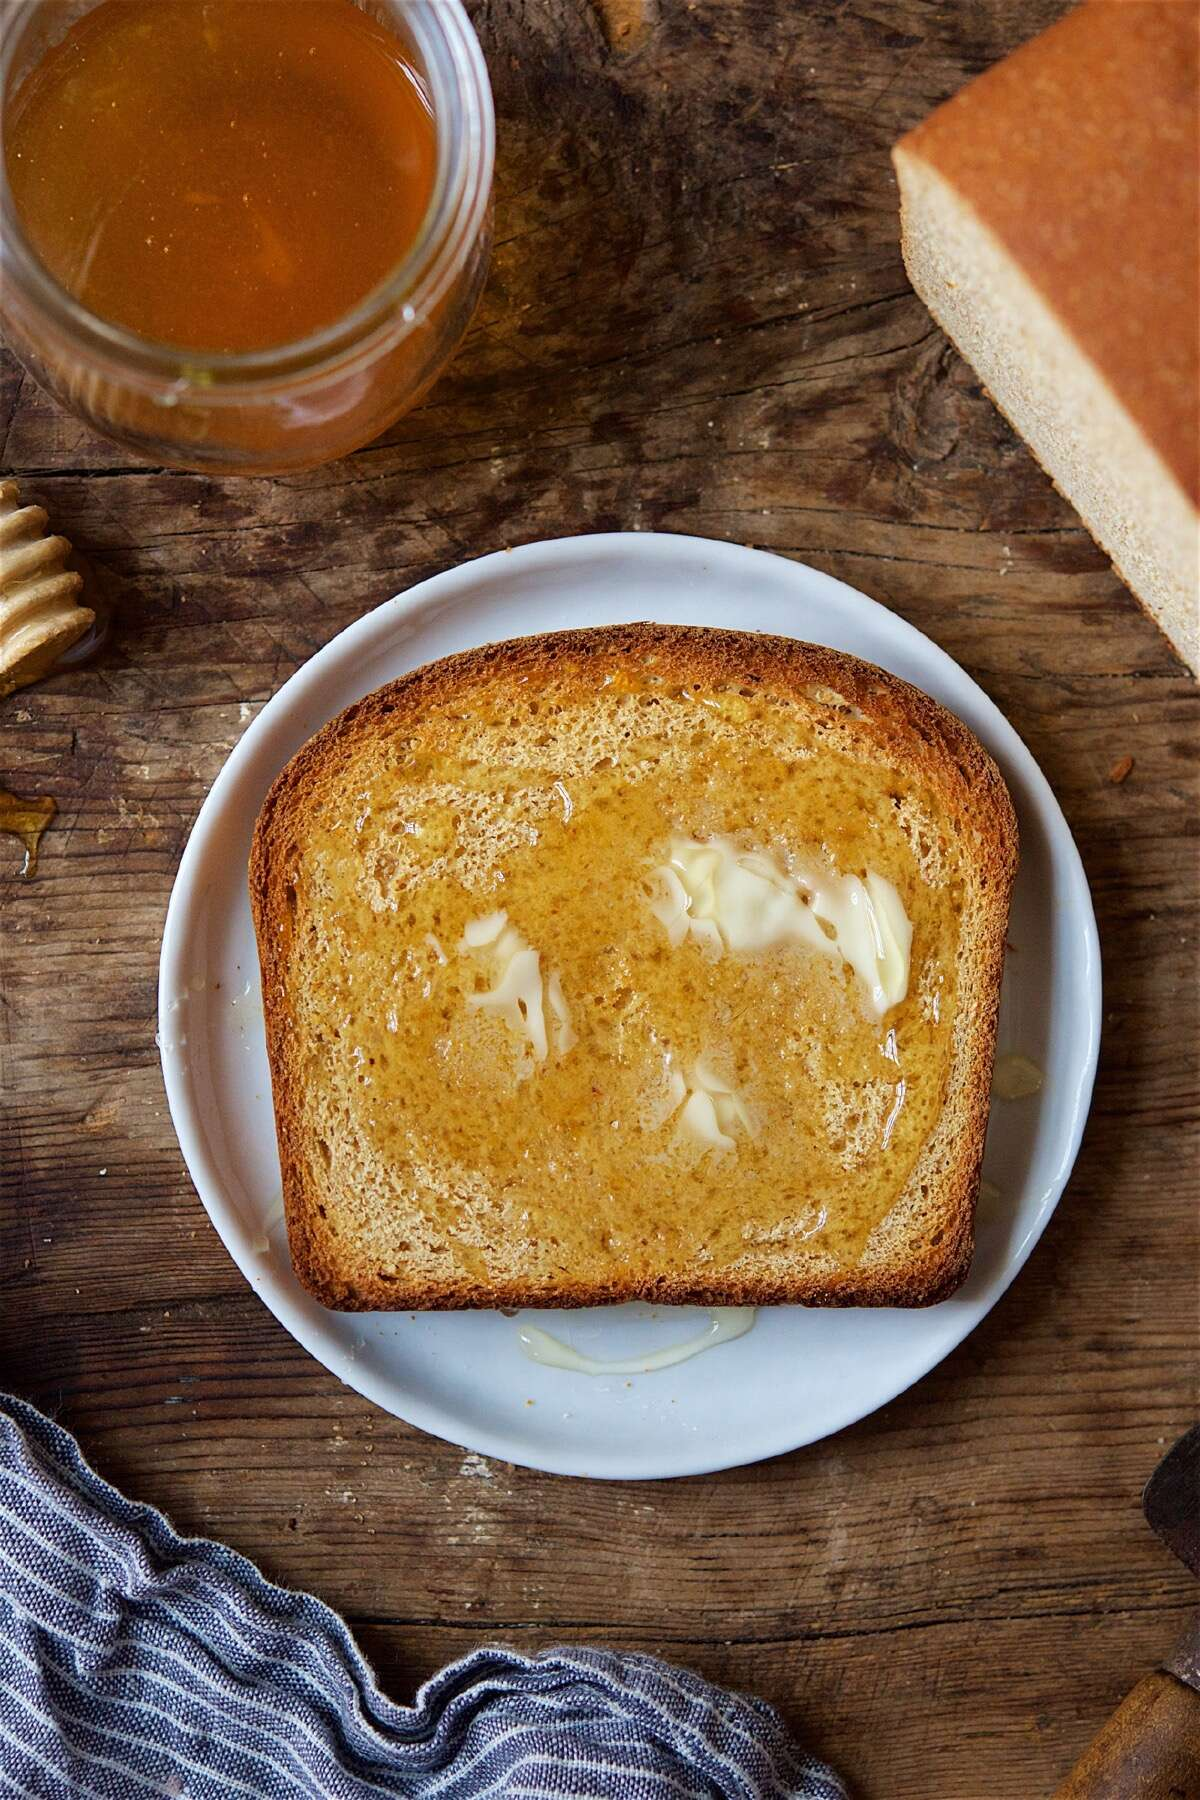 A slice of Classic 100% Whole Wheat Bread on a plate, lightly toasted and topped with melting butter and honey.